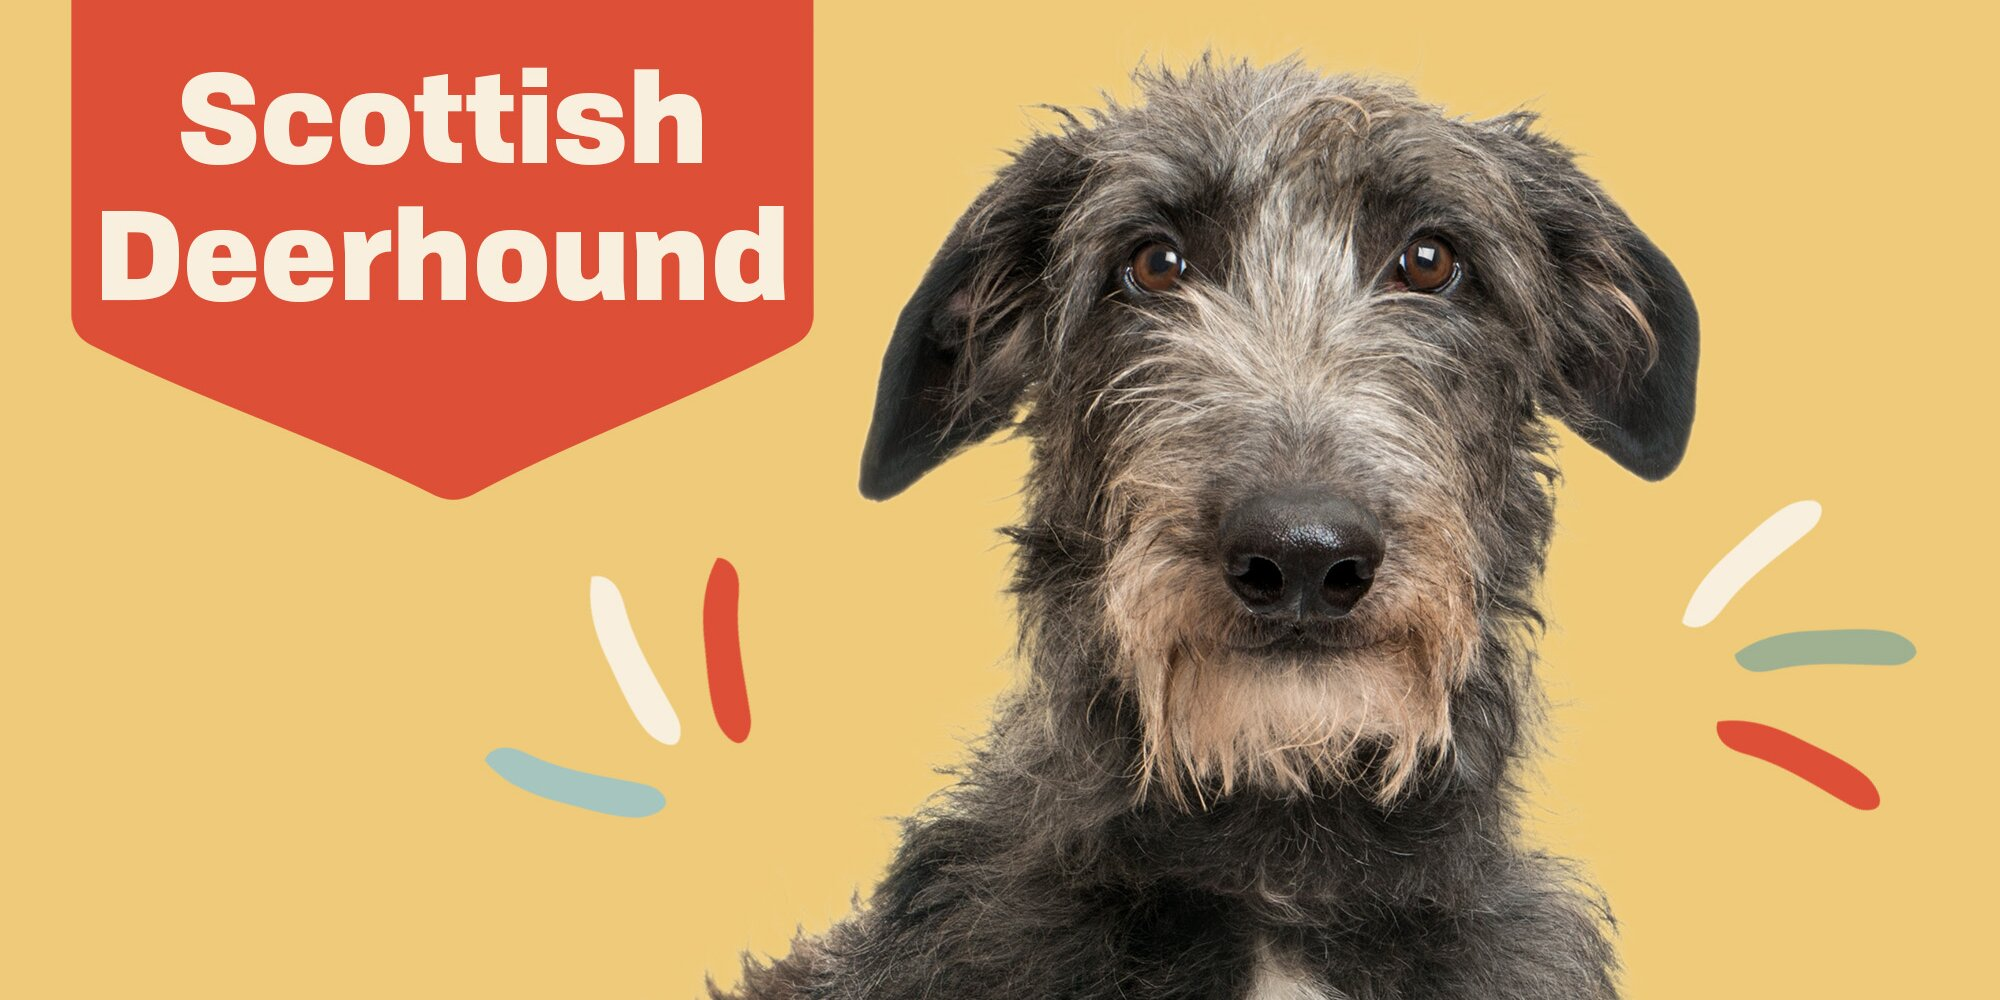 Learn All About the Scottish Deerhound